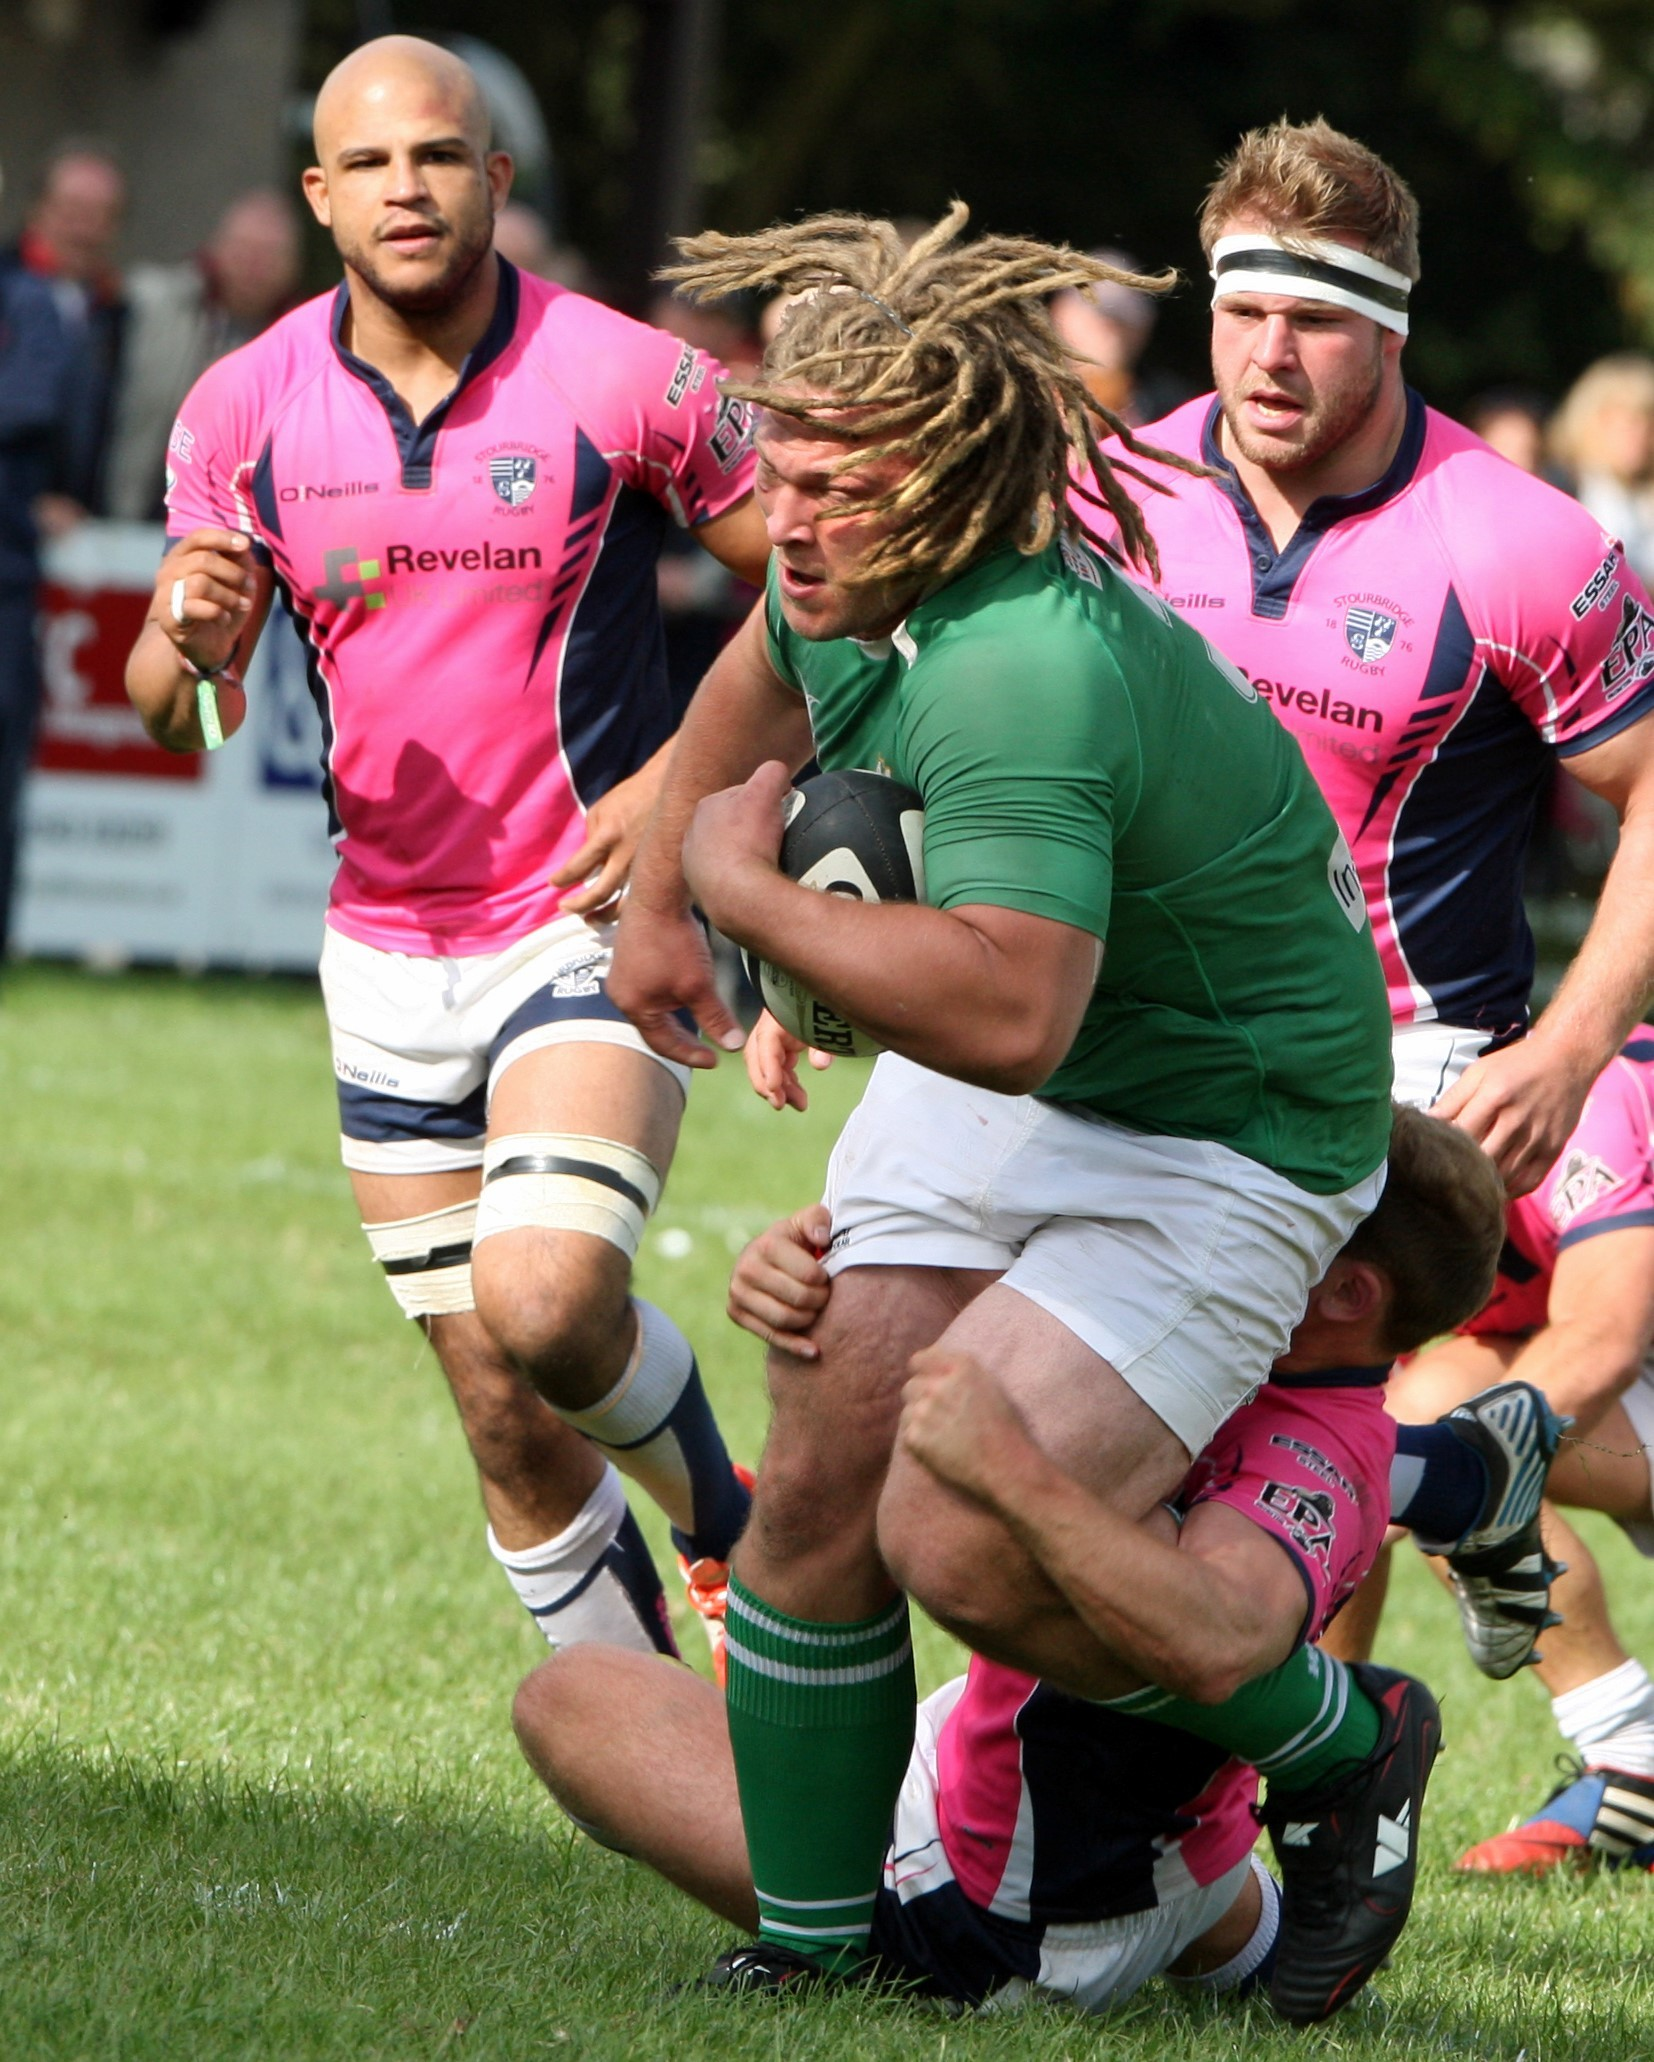 Winger's try Cooks Wharfedale's goose